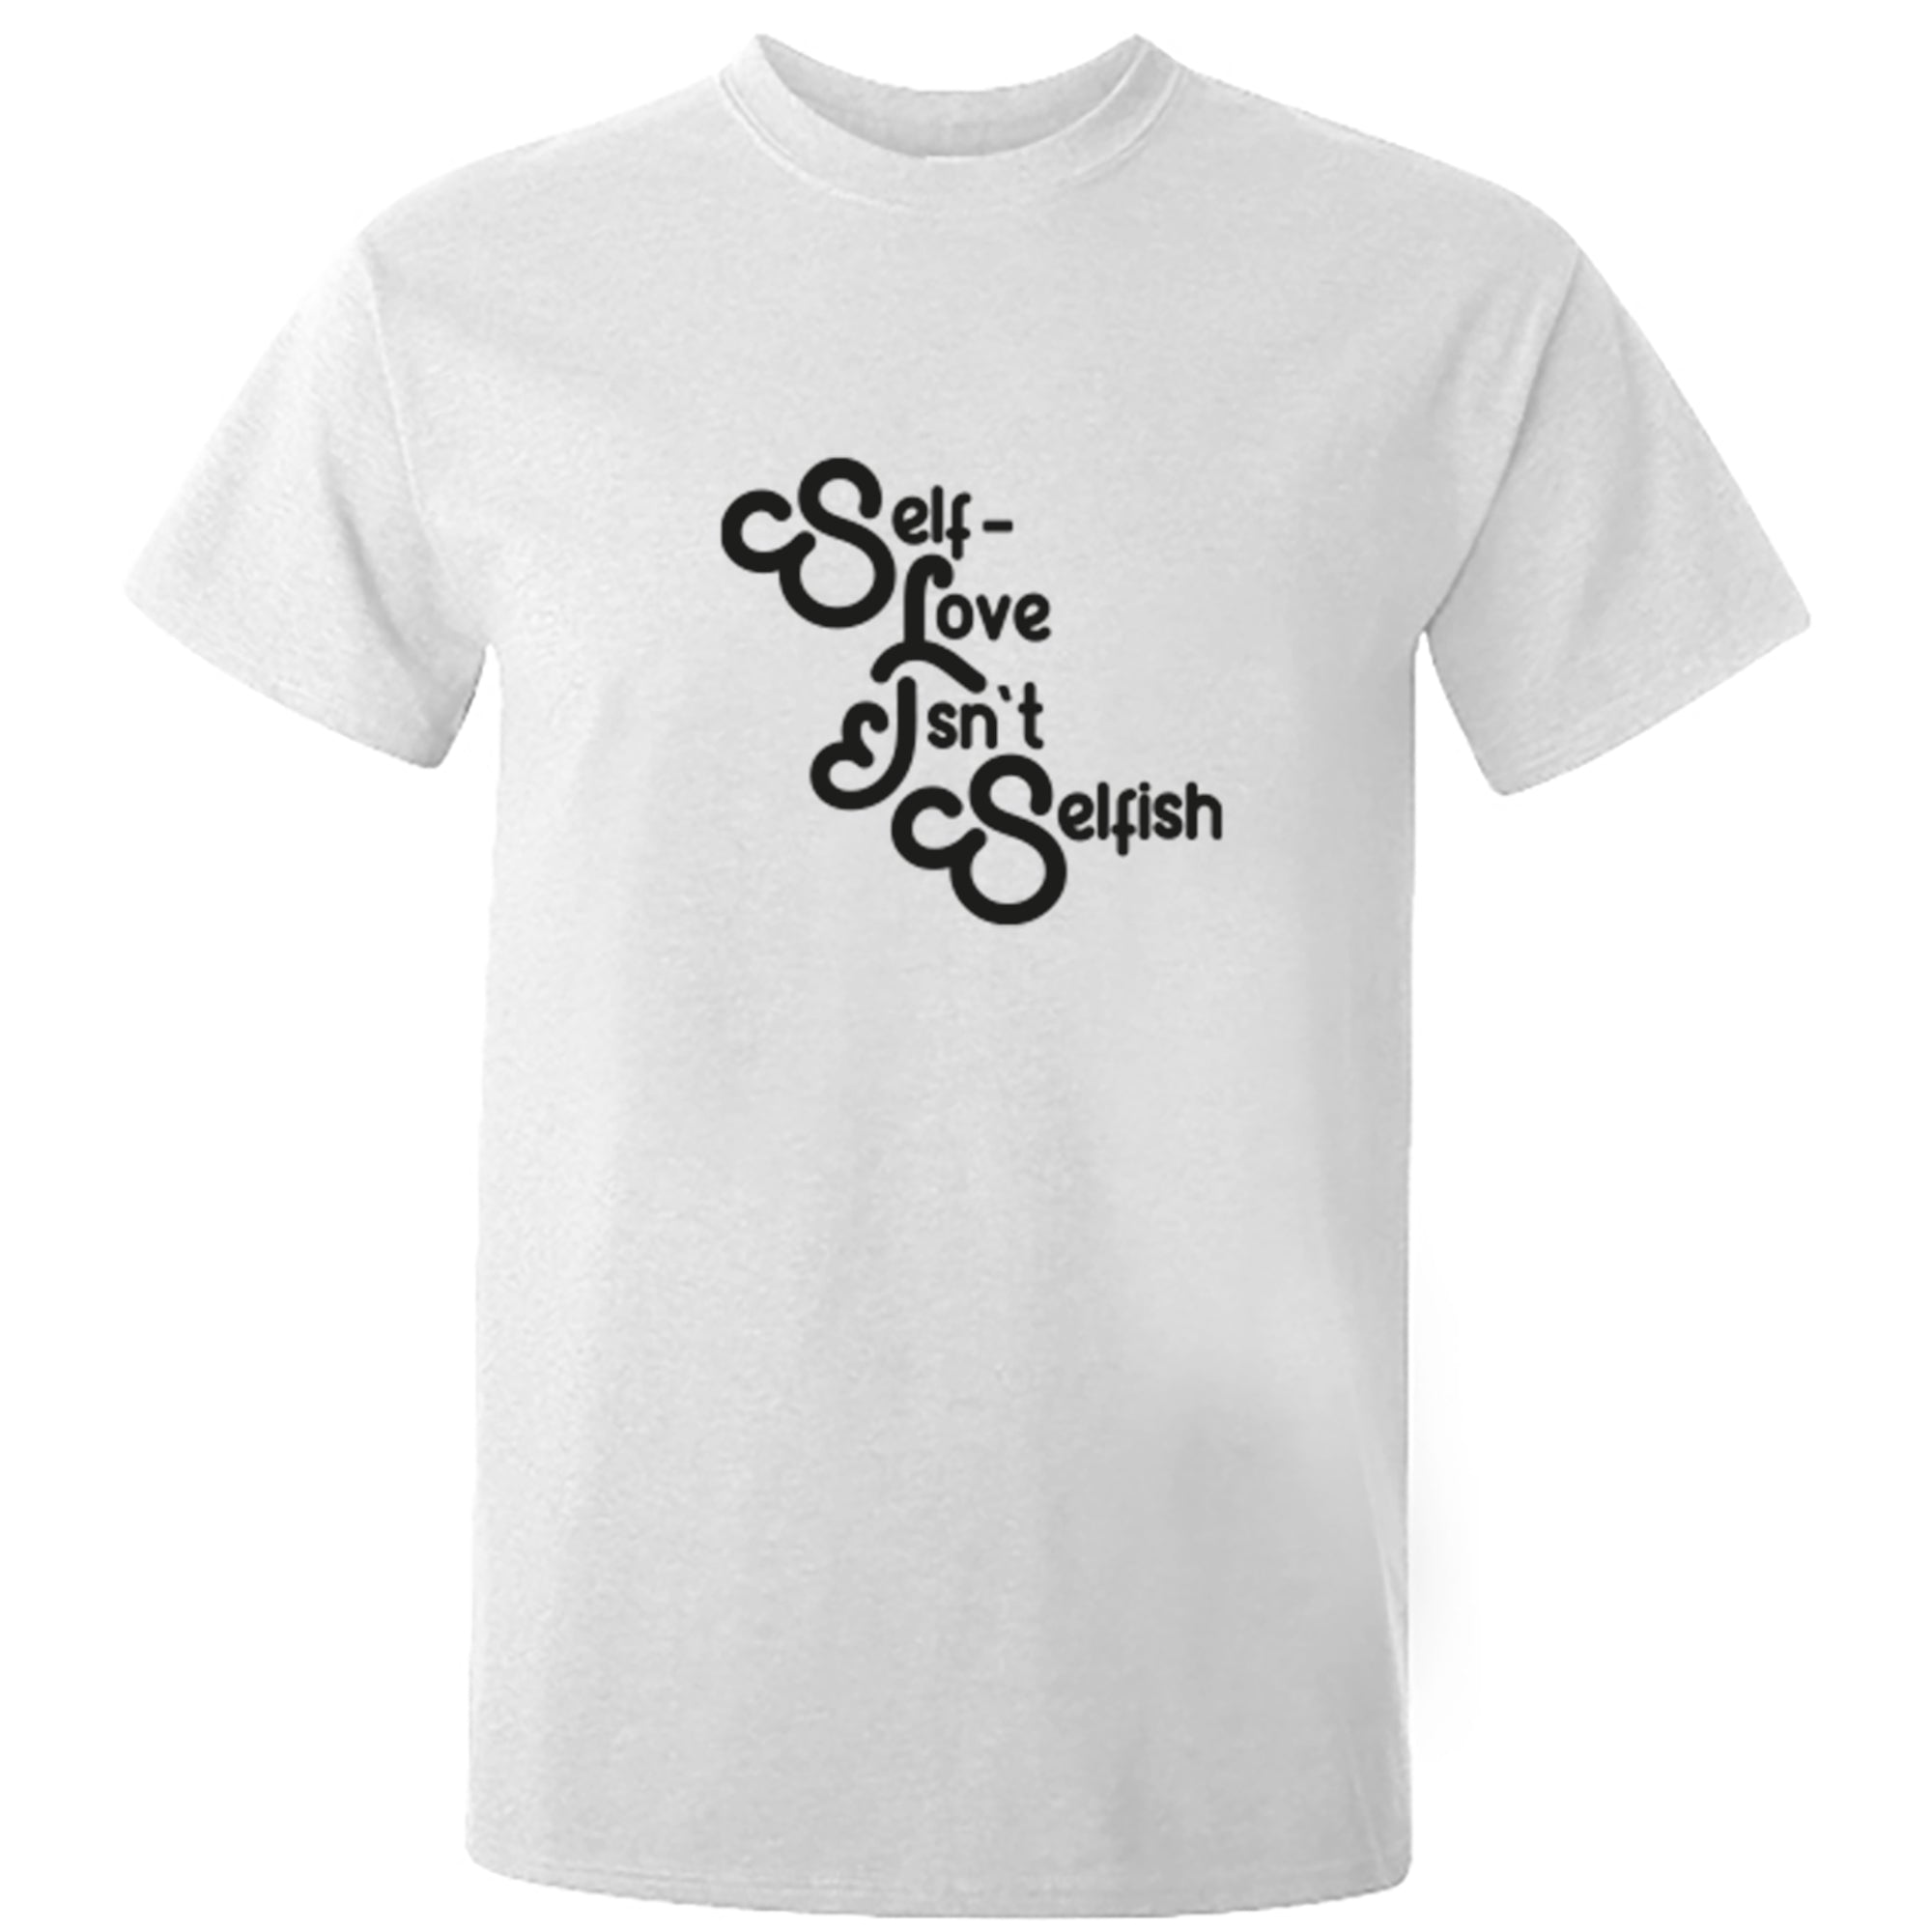 Self Love Isn't Selfish Unisex Fit T-Shirt S0912 - Illustrated Identity Ltd.